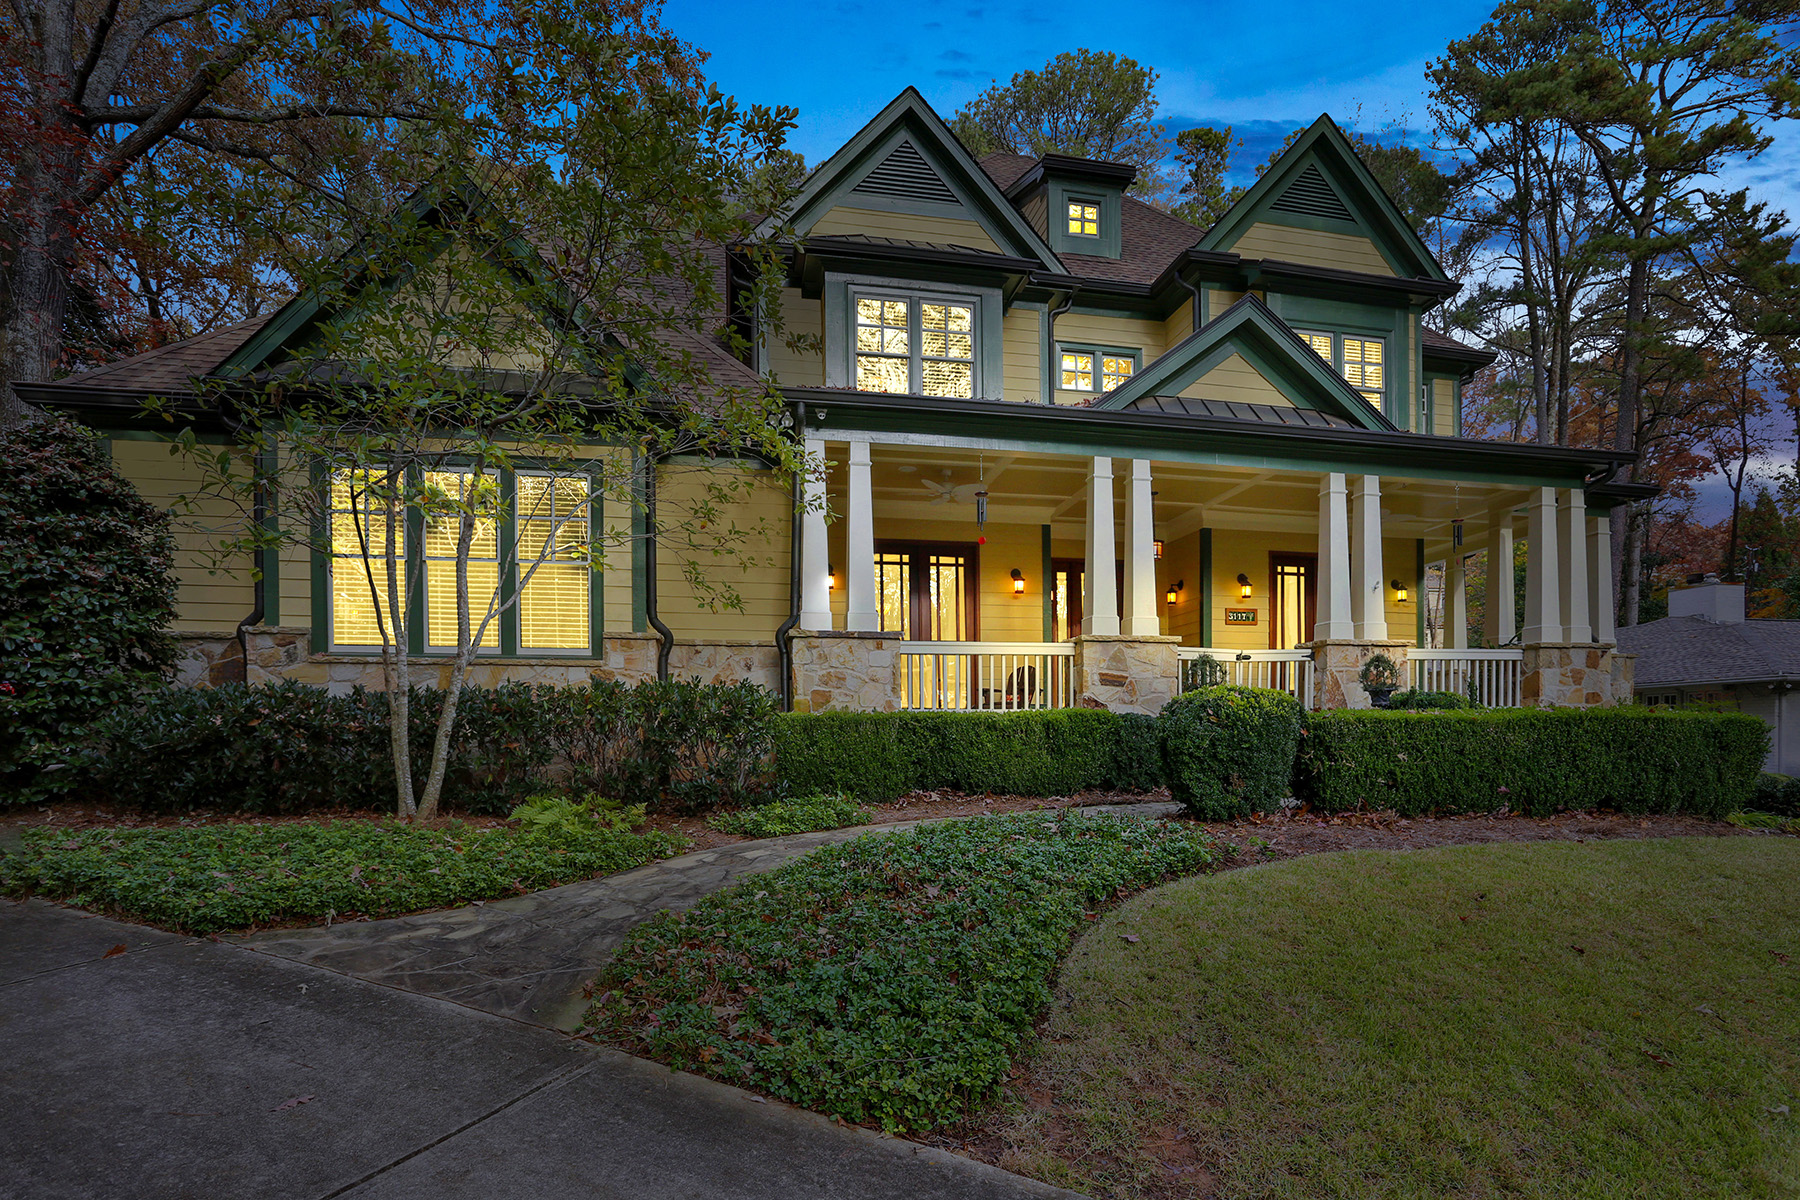 Vivienda unifamiliar por un Venta en Beautiful Craftsman in the Heart of Pine Hills, Buckhead 3117 W Roxboro Road NE Atlanta, Georgia 30324 Estados Unidos